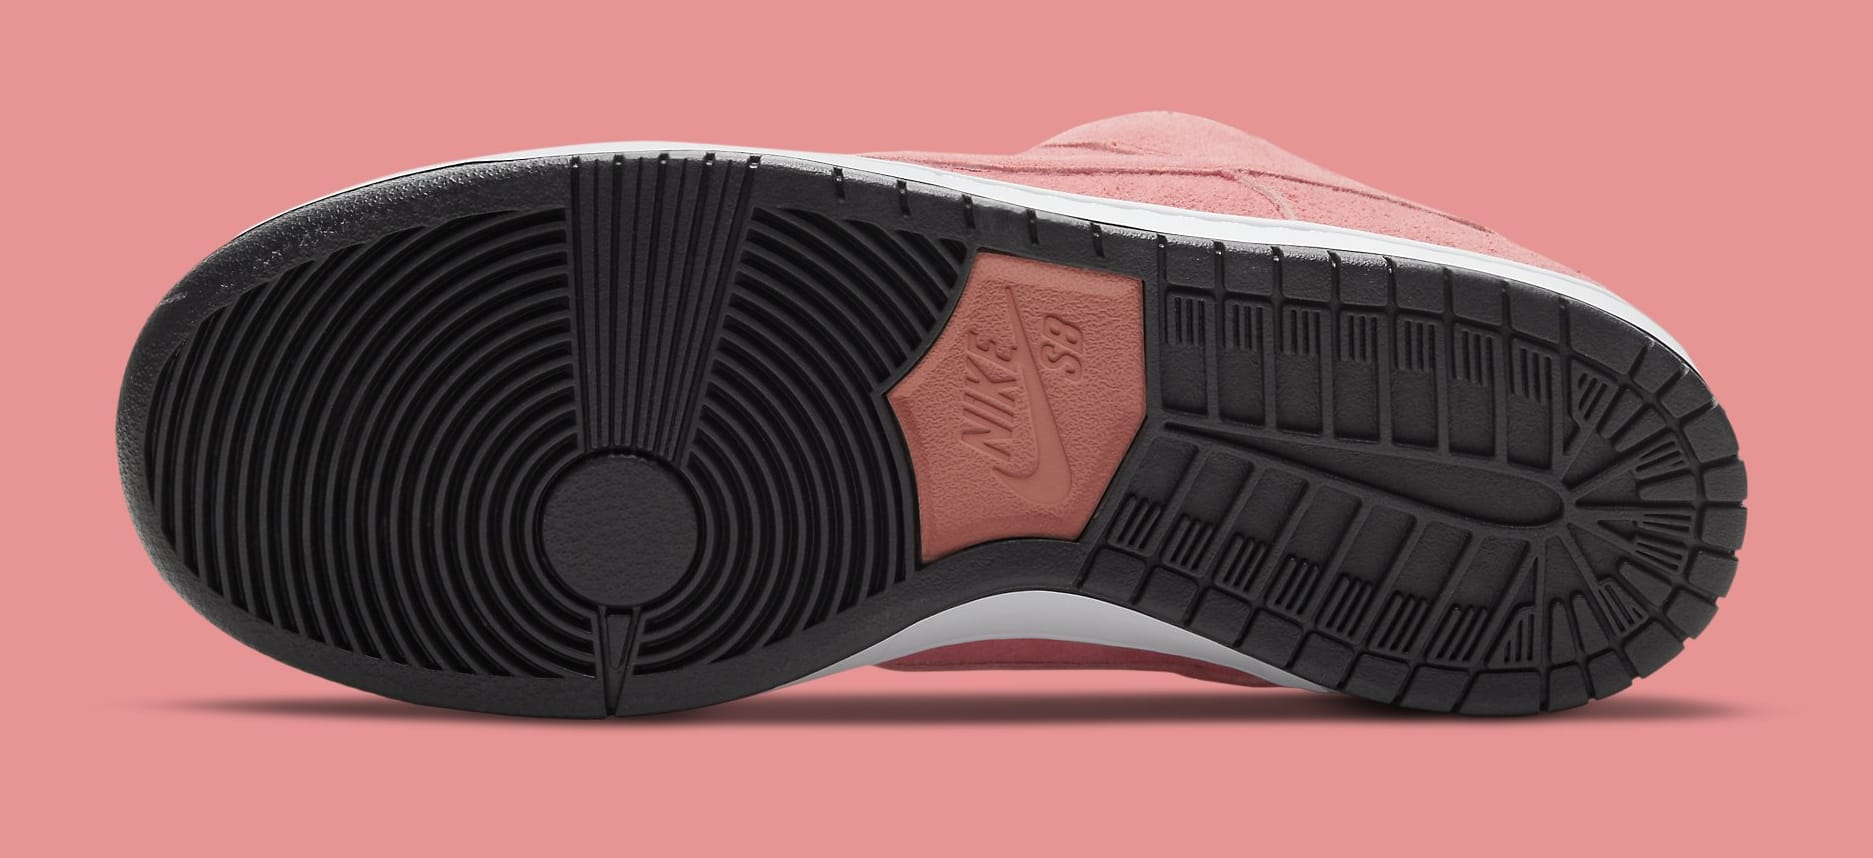 Nike SB Dunk Low 'Pink Pig' CV1655-600 Outsole